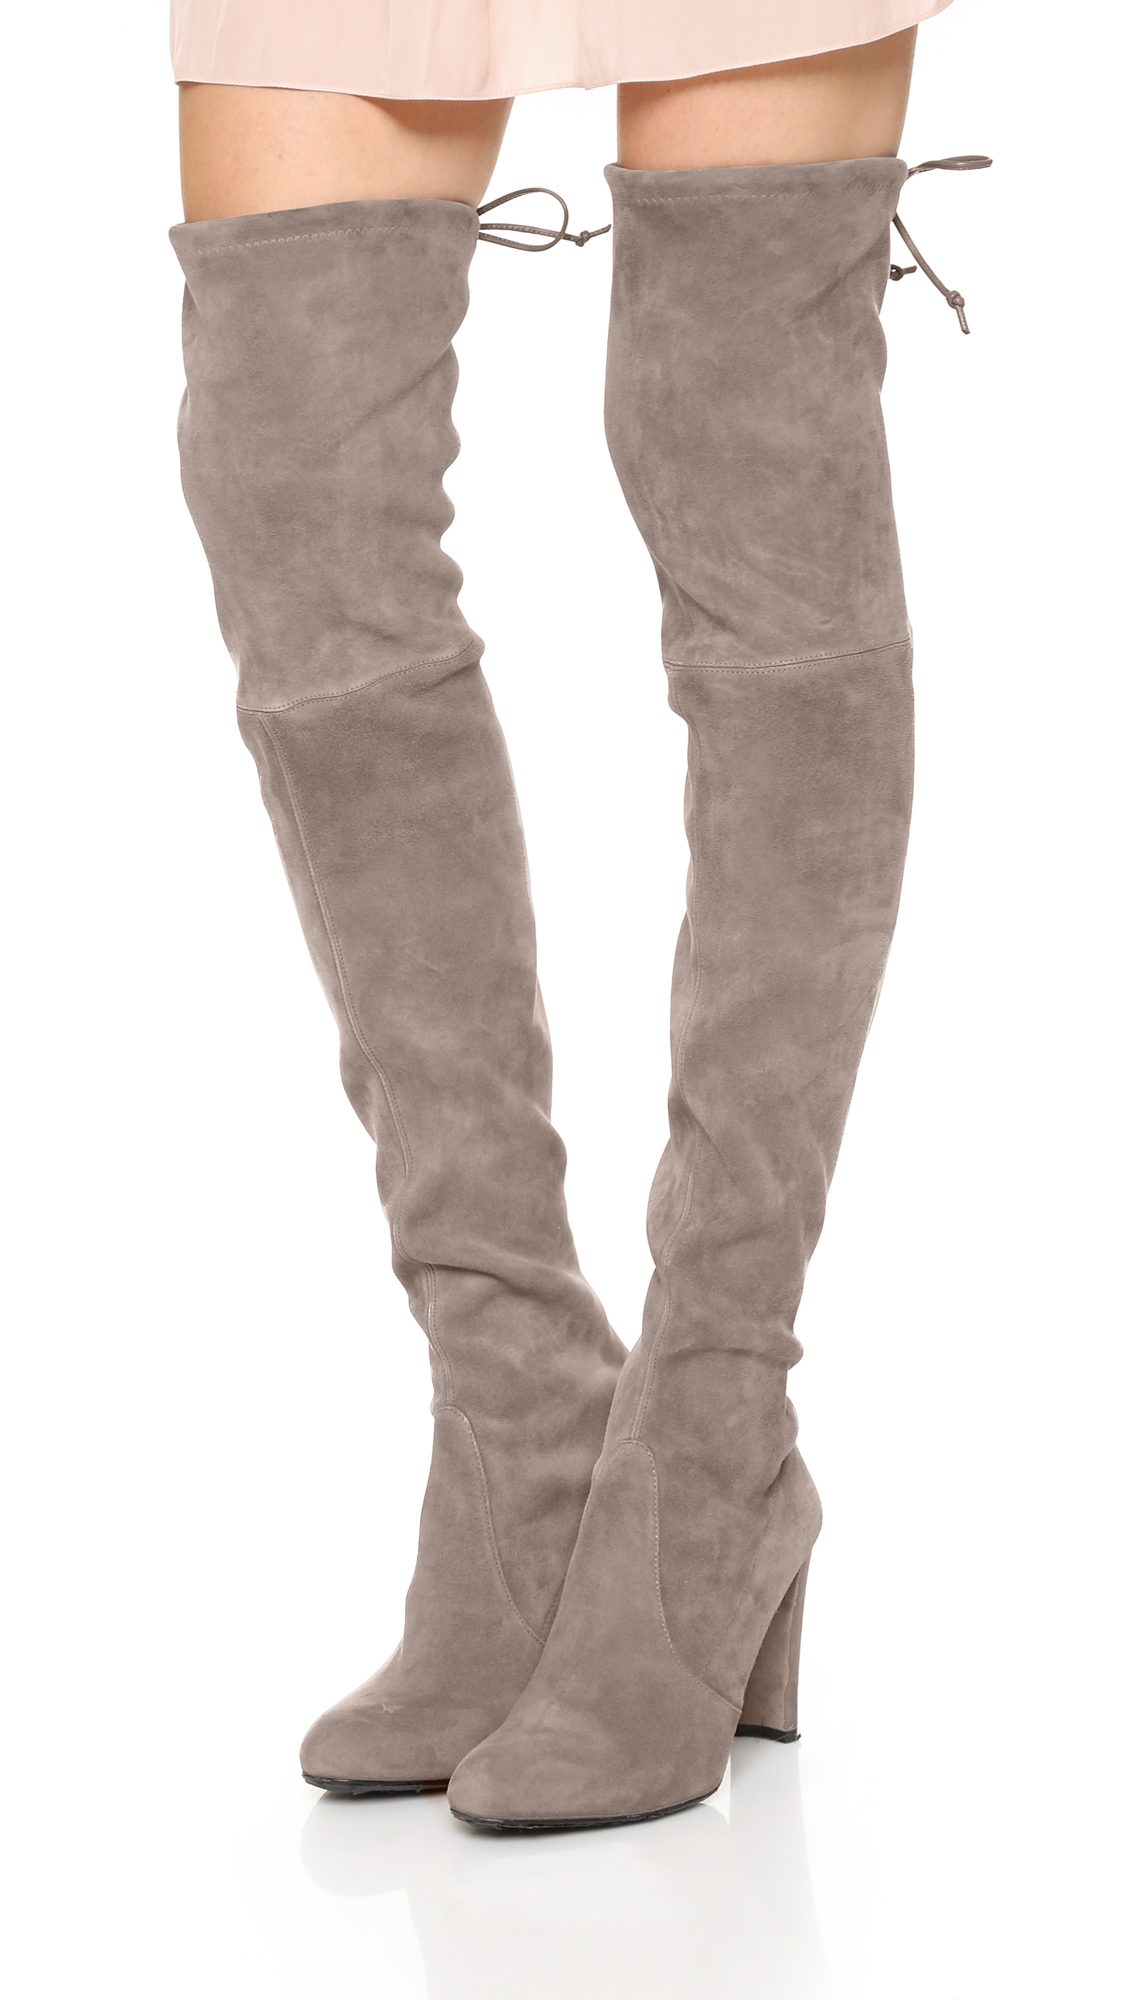 99086d74d094 Stuart Weitzman Highland Over The Knee Boots in Brown - Lyst